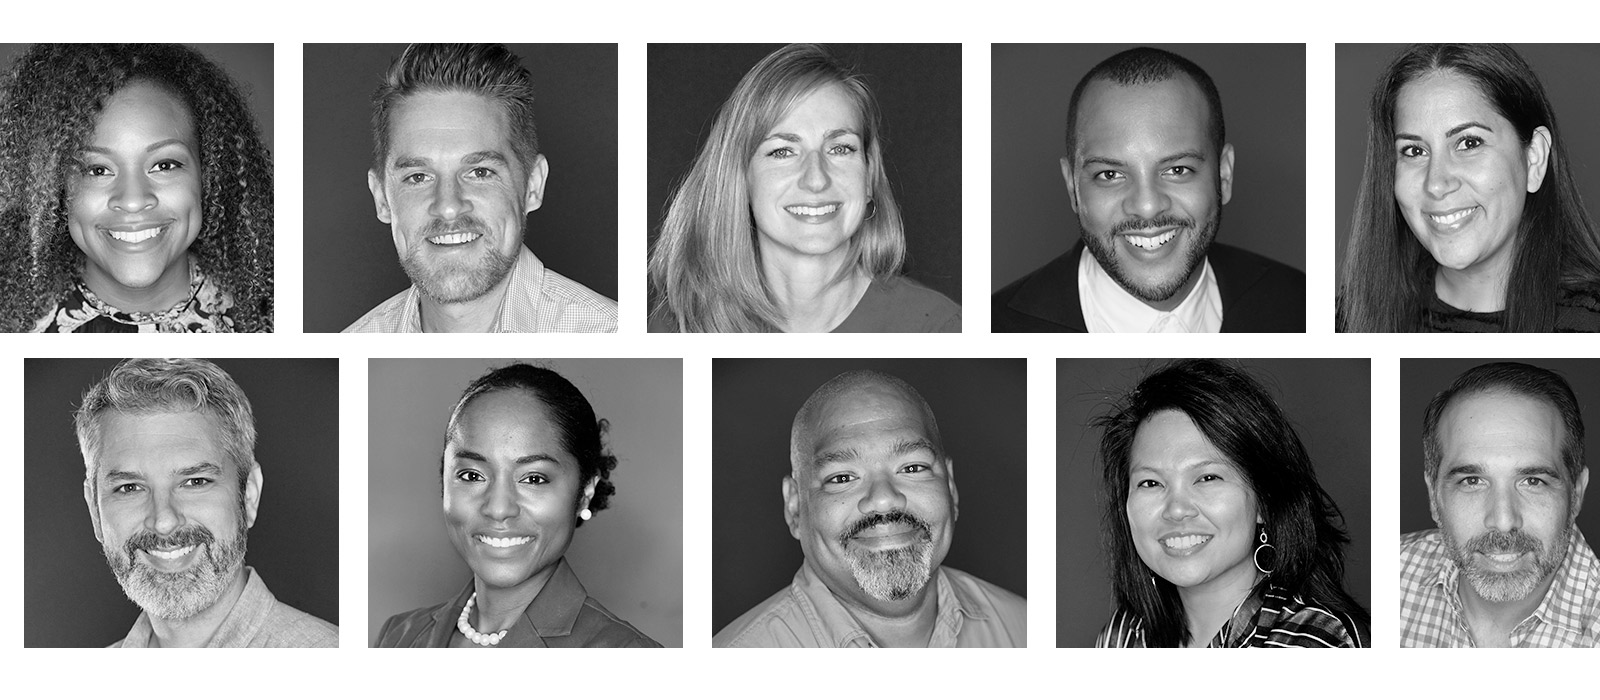 A black and white collage of portraits of crew members.